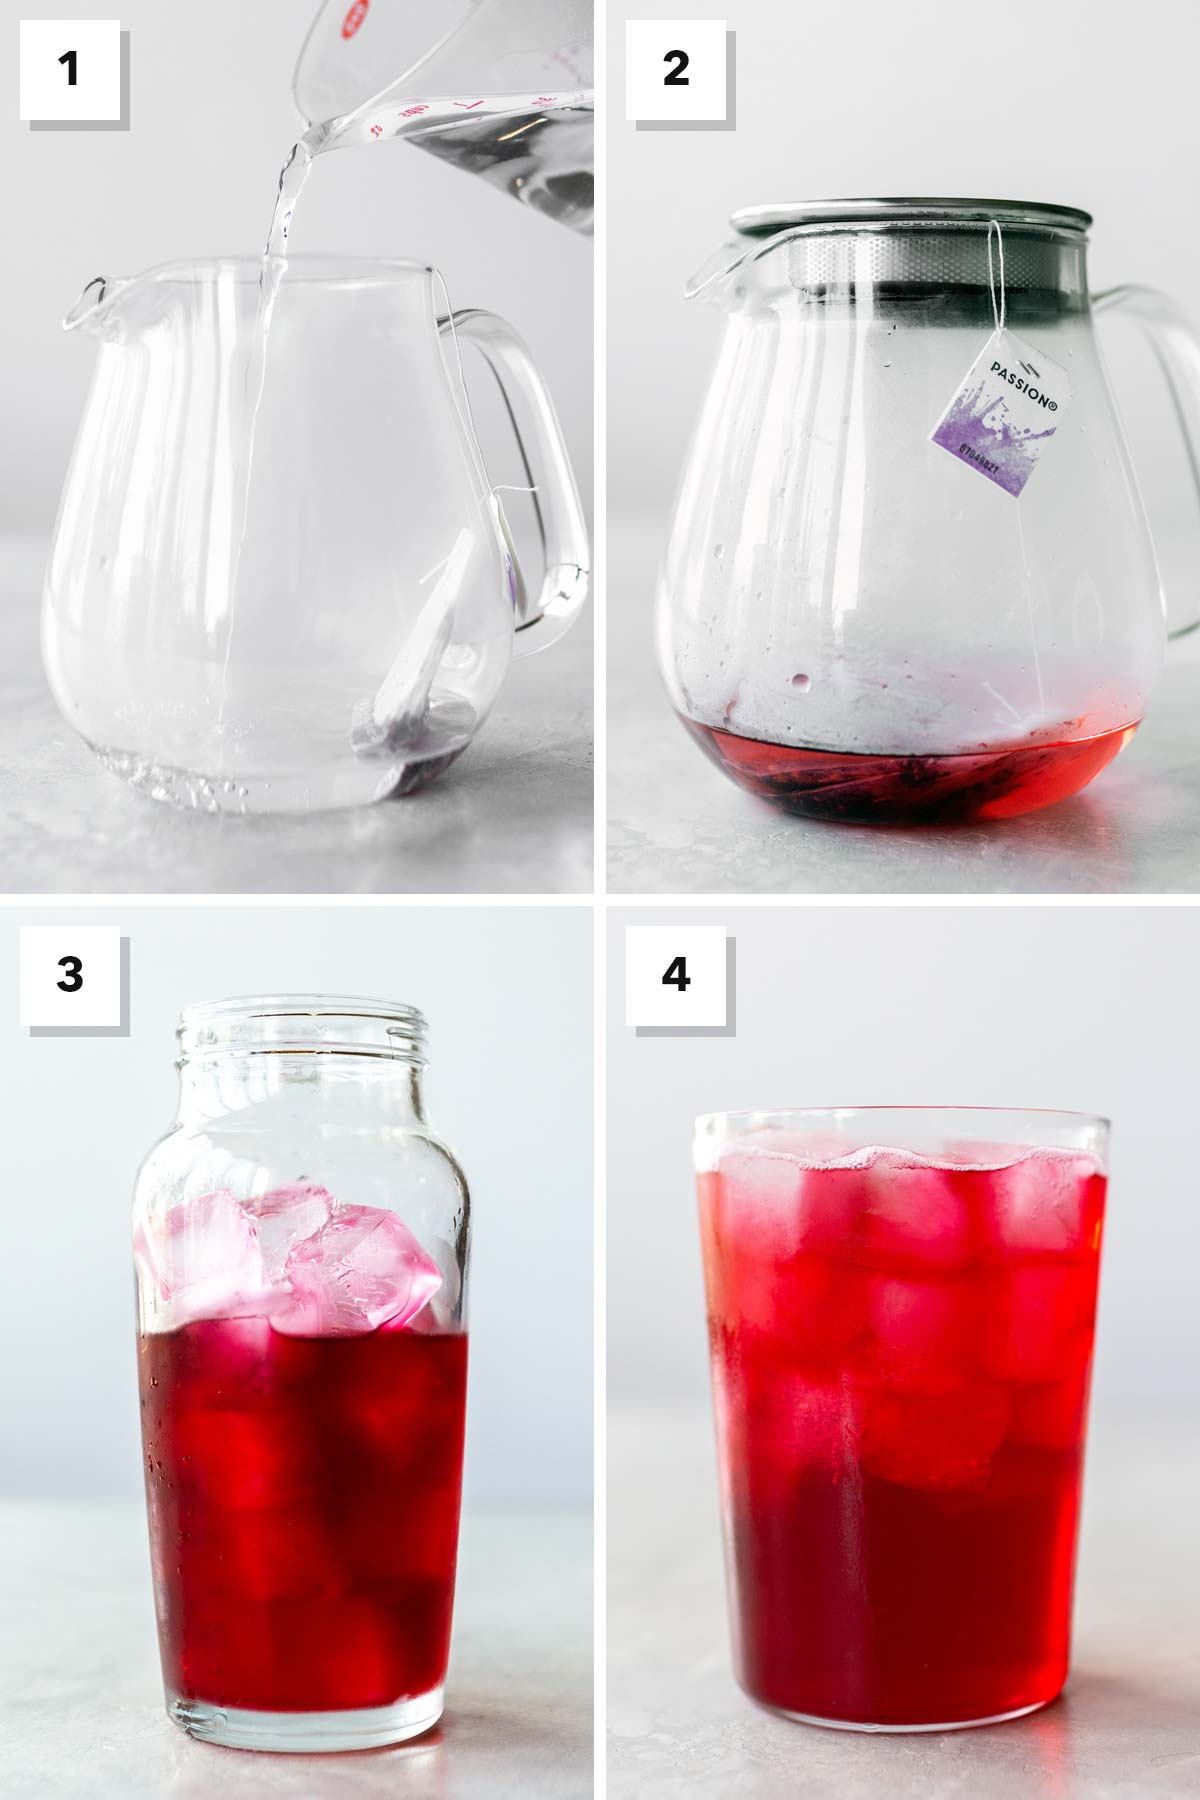 Four photo collage showing steps to make Iced Passion Tango Tea at home.